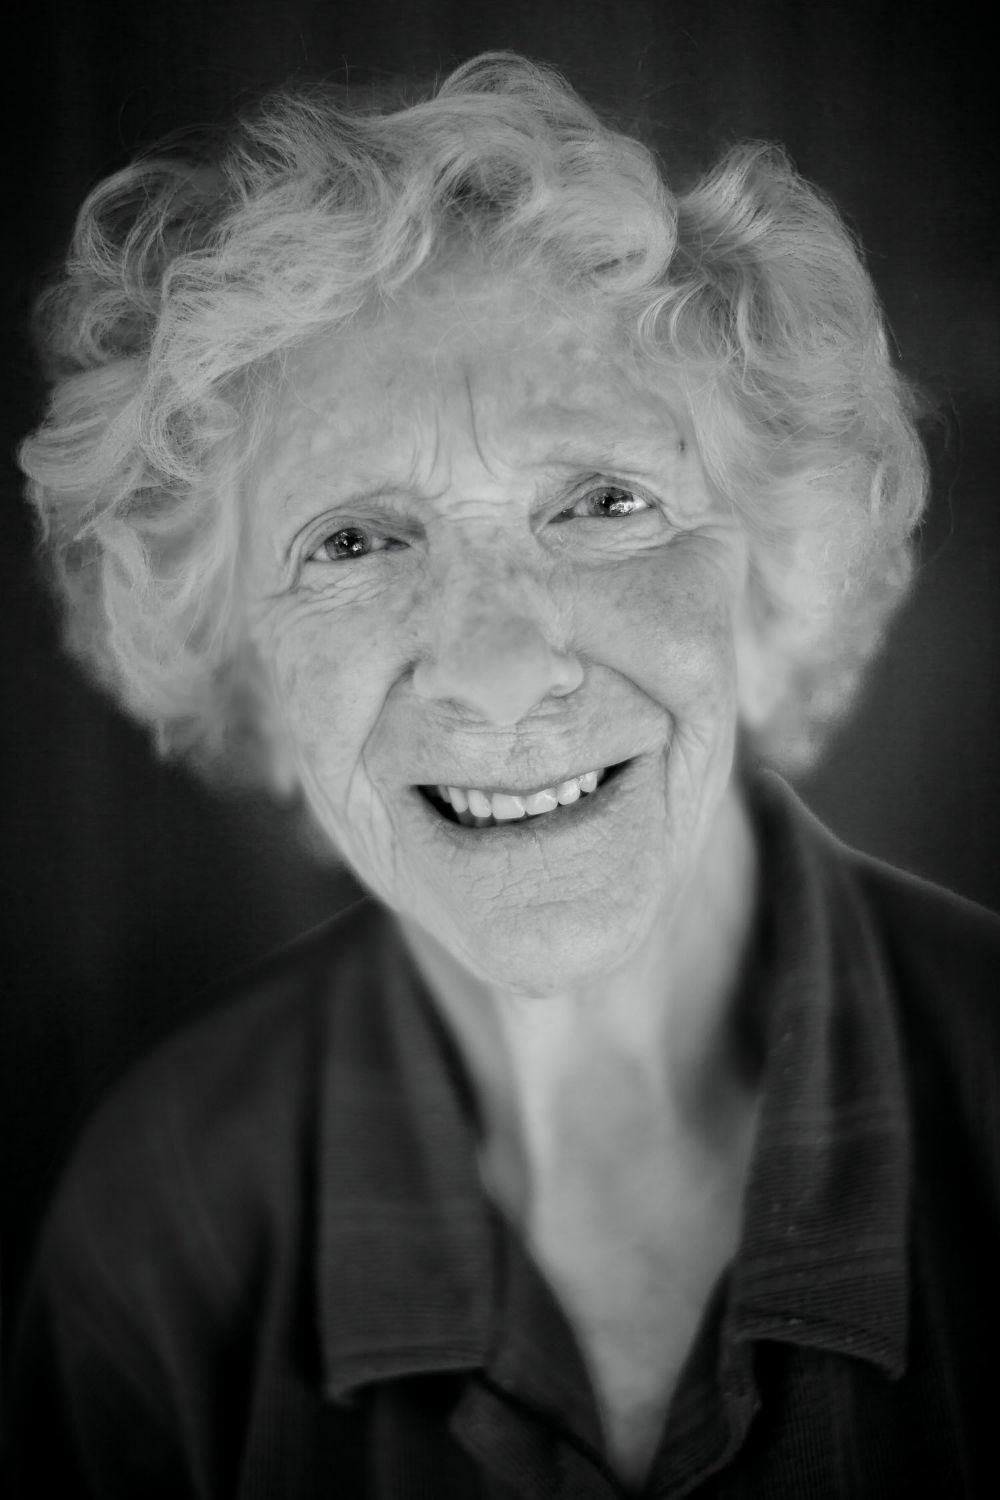 My mother, Mary Guy, in Hamilton in 2011. The photo was made with a Canon 5D Mark II camera and Canon 50 mm  f/ 1.2 L series lens. Exposure details are 1/160 second @  f/ 1.2 at ISO 100.